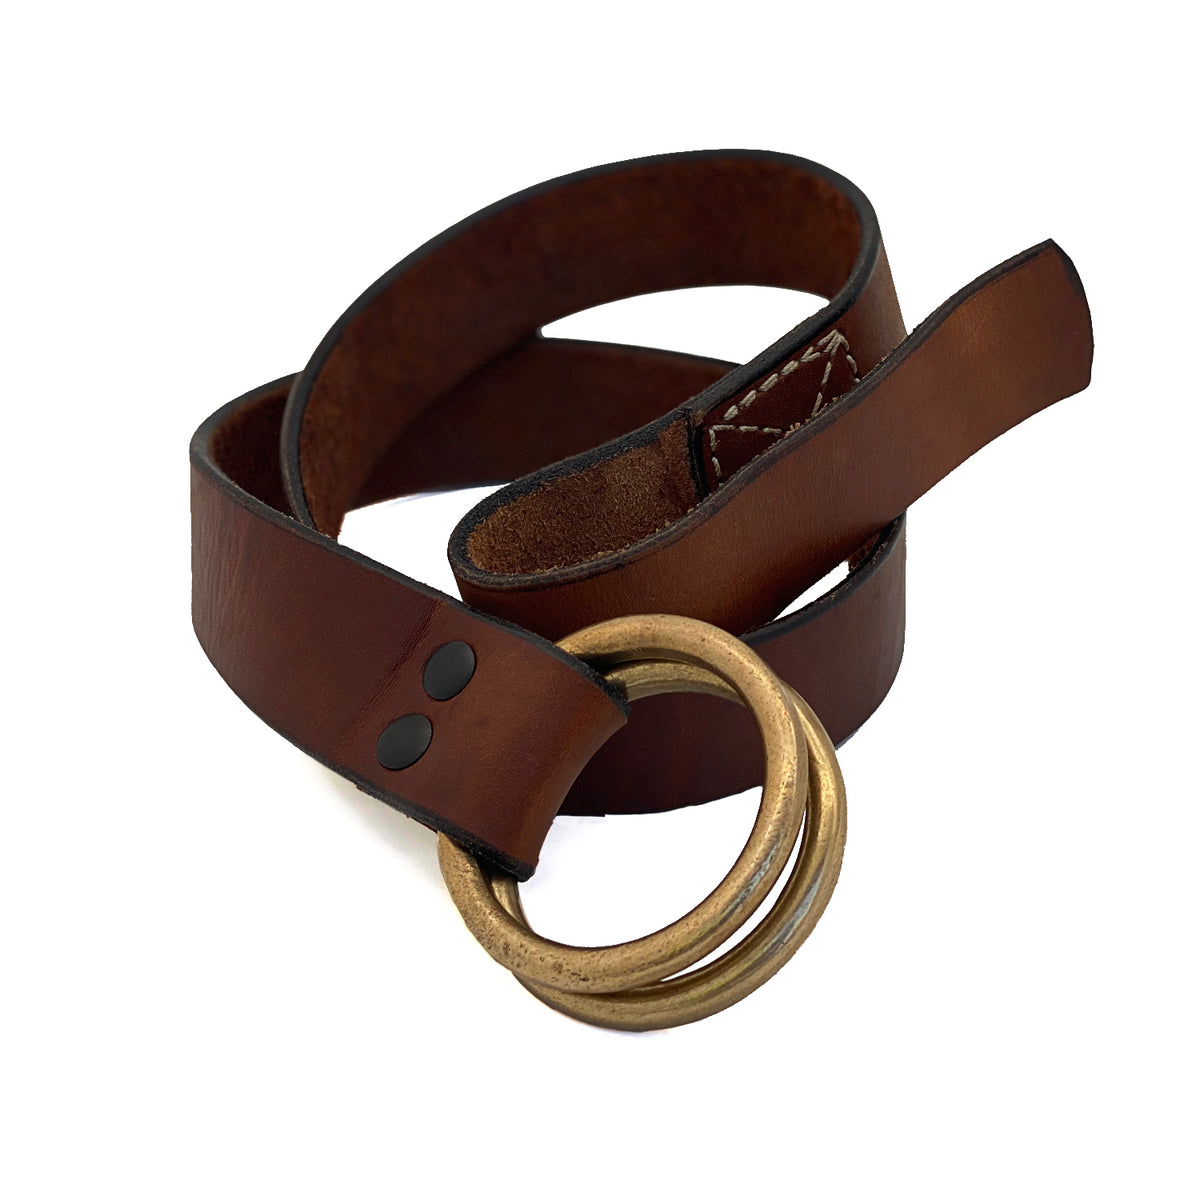 Stainless Double Ring Black 1.5 Leather Belt | The Sausalito